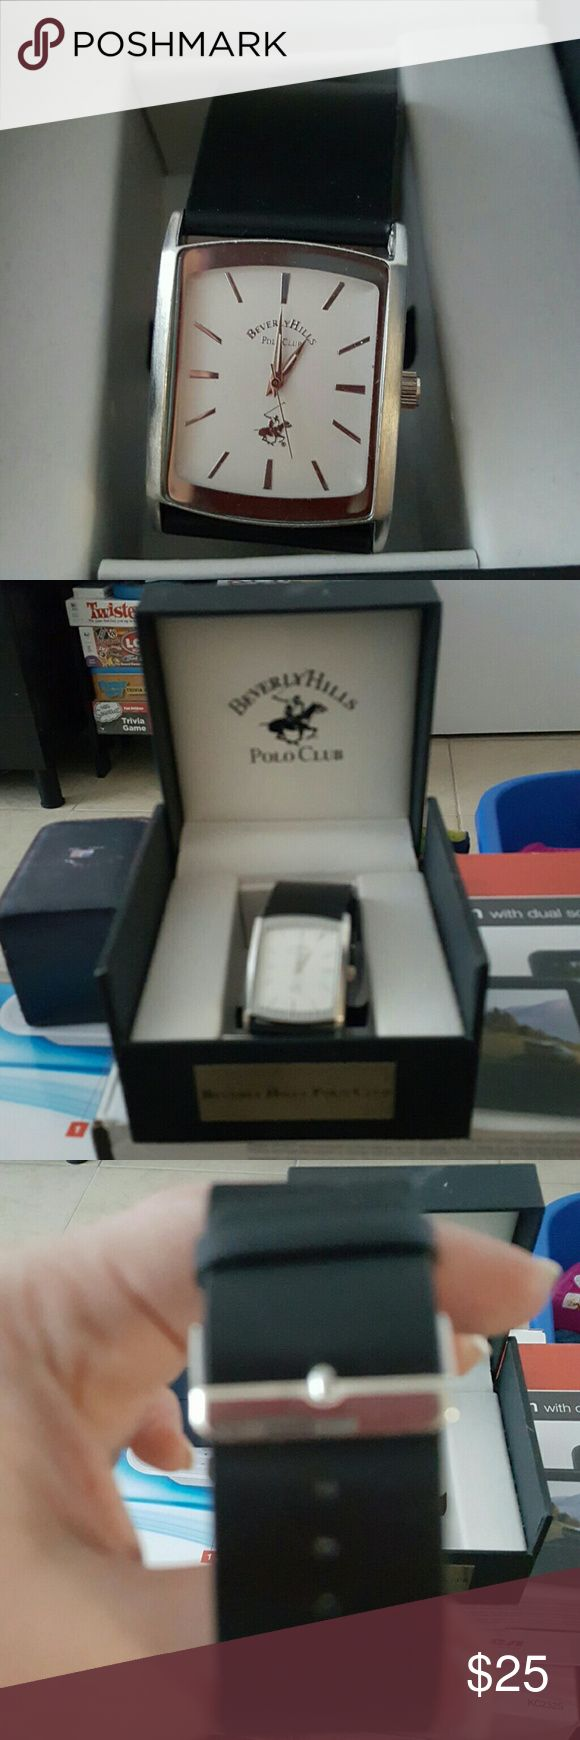 Men's Beverly Hills Polo Watch Genuine leather band....never worn. Clear screen still on the back. Will come with box. Beverly Hills Polo Club Accessories Watches